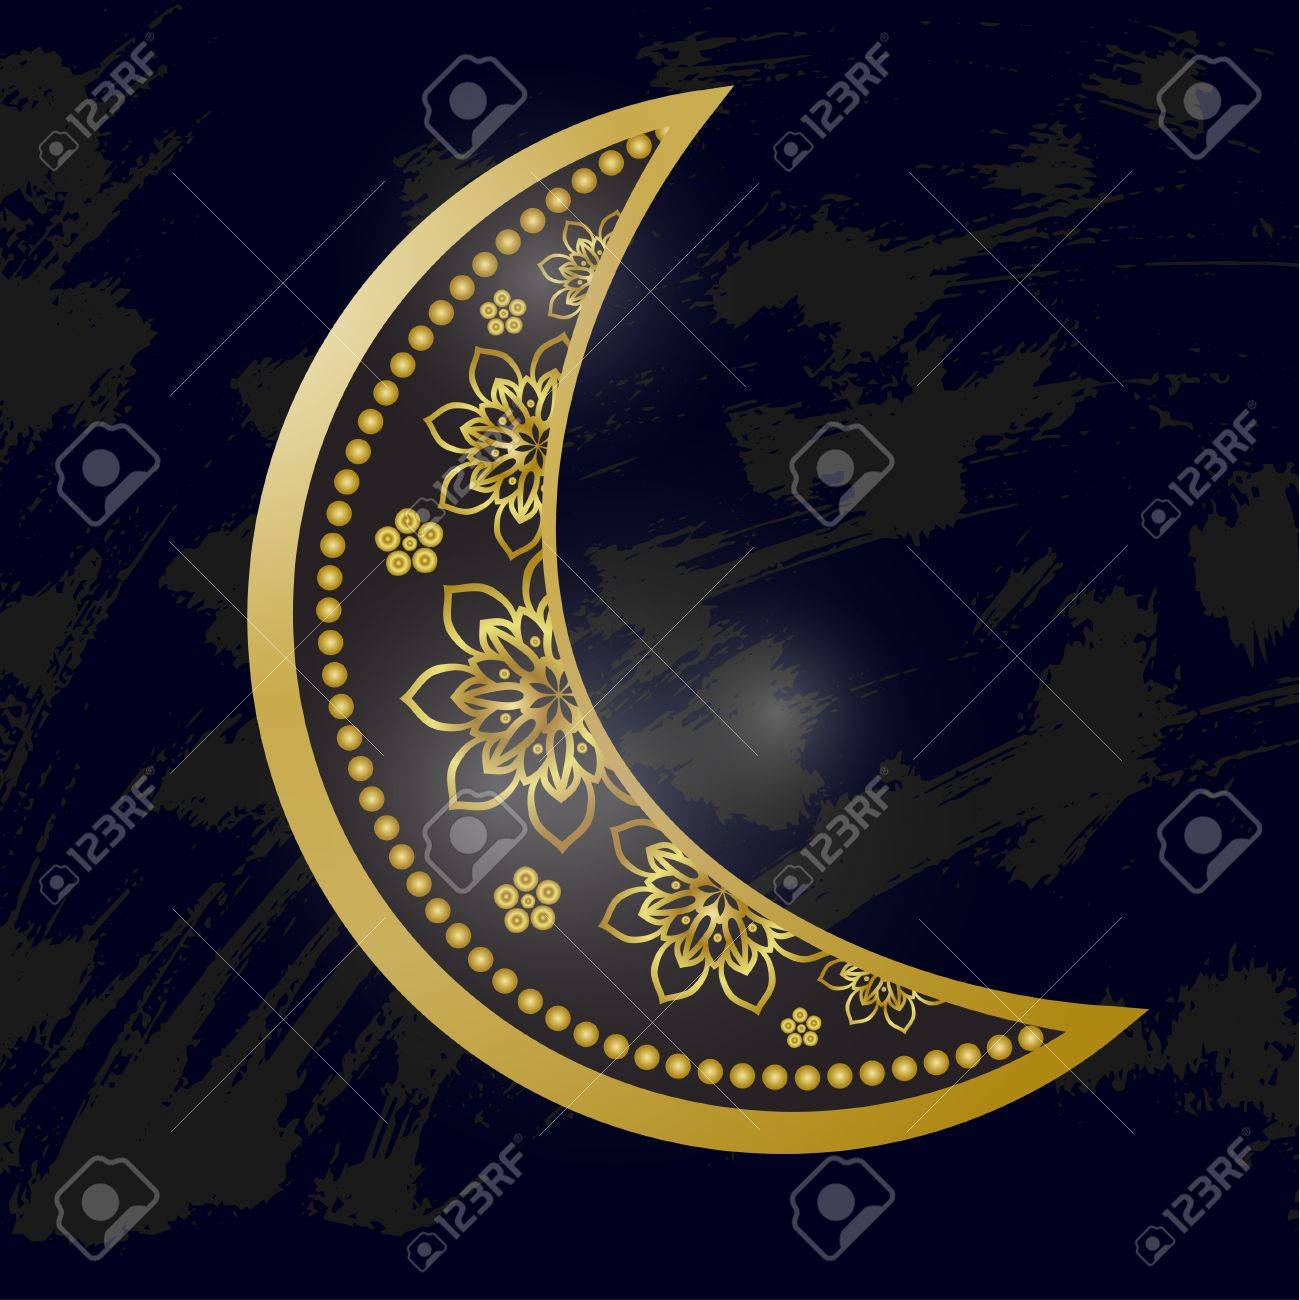 Ornametal moom ethnic sleep dreams symbol invitation card in banco de imagens ornametal moom ethnic sleep dreams symbol invitation card in vector perfect cards for any other kind of design and other holiday stopboris Image collections